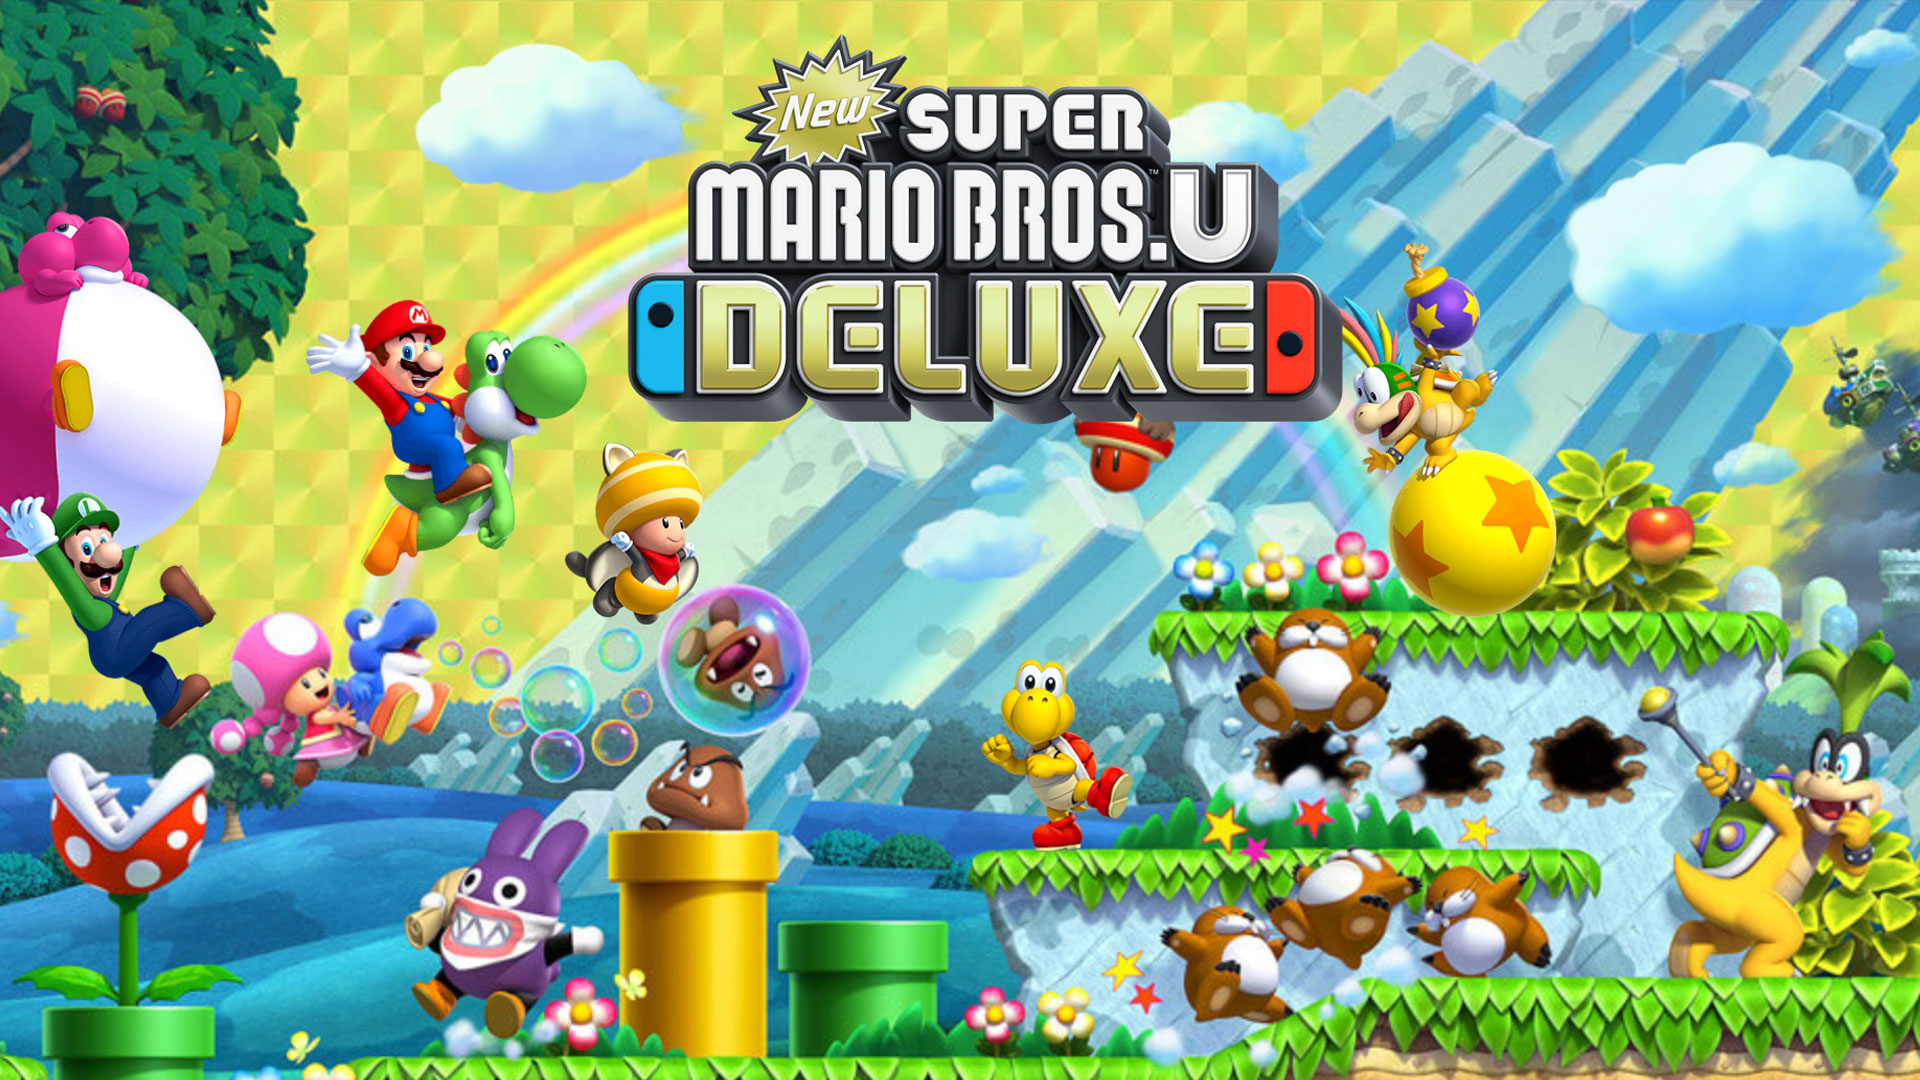 New Super Mario Bros U Deluxe review 2D Mario title gets the 1920x1080